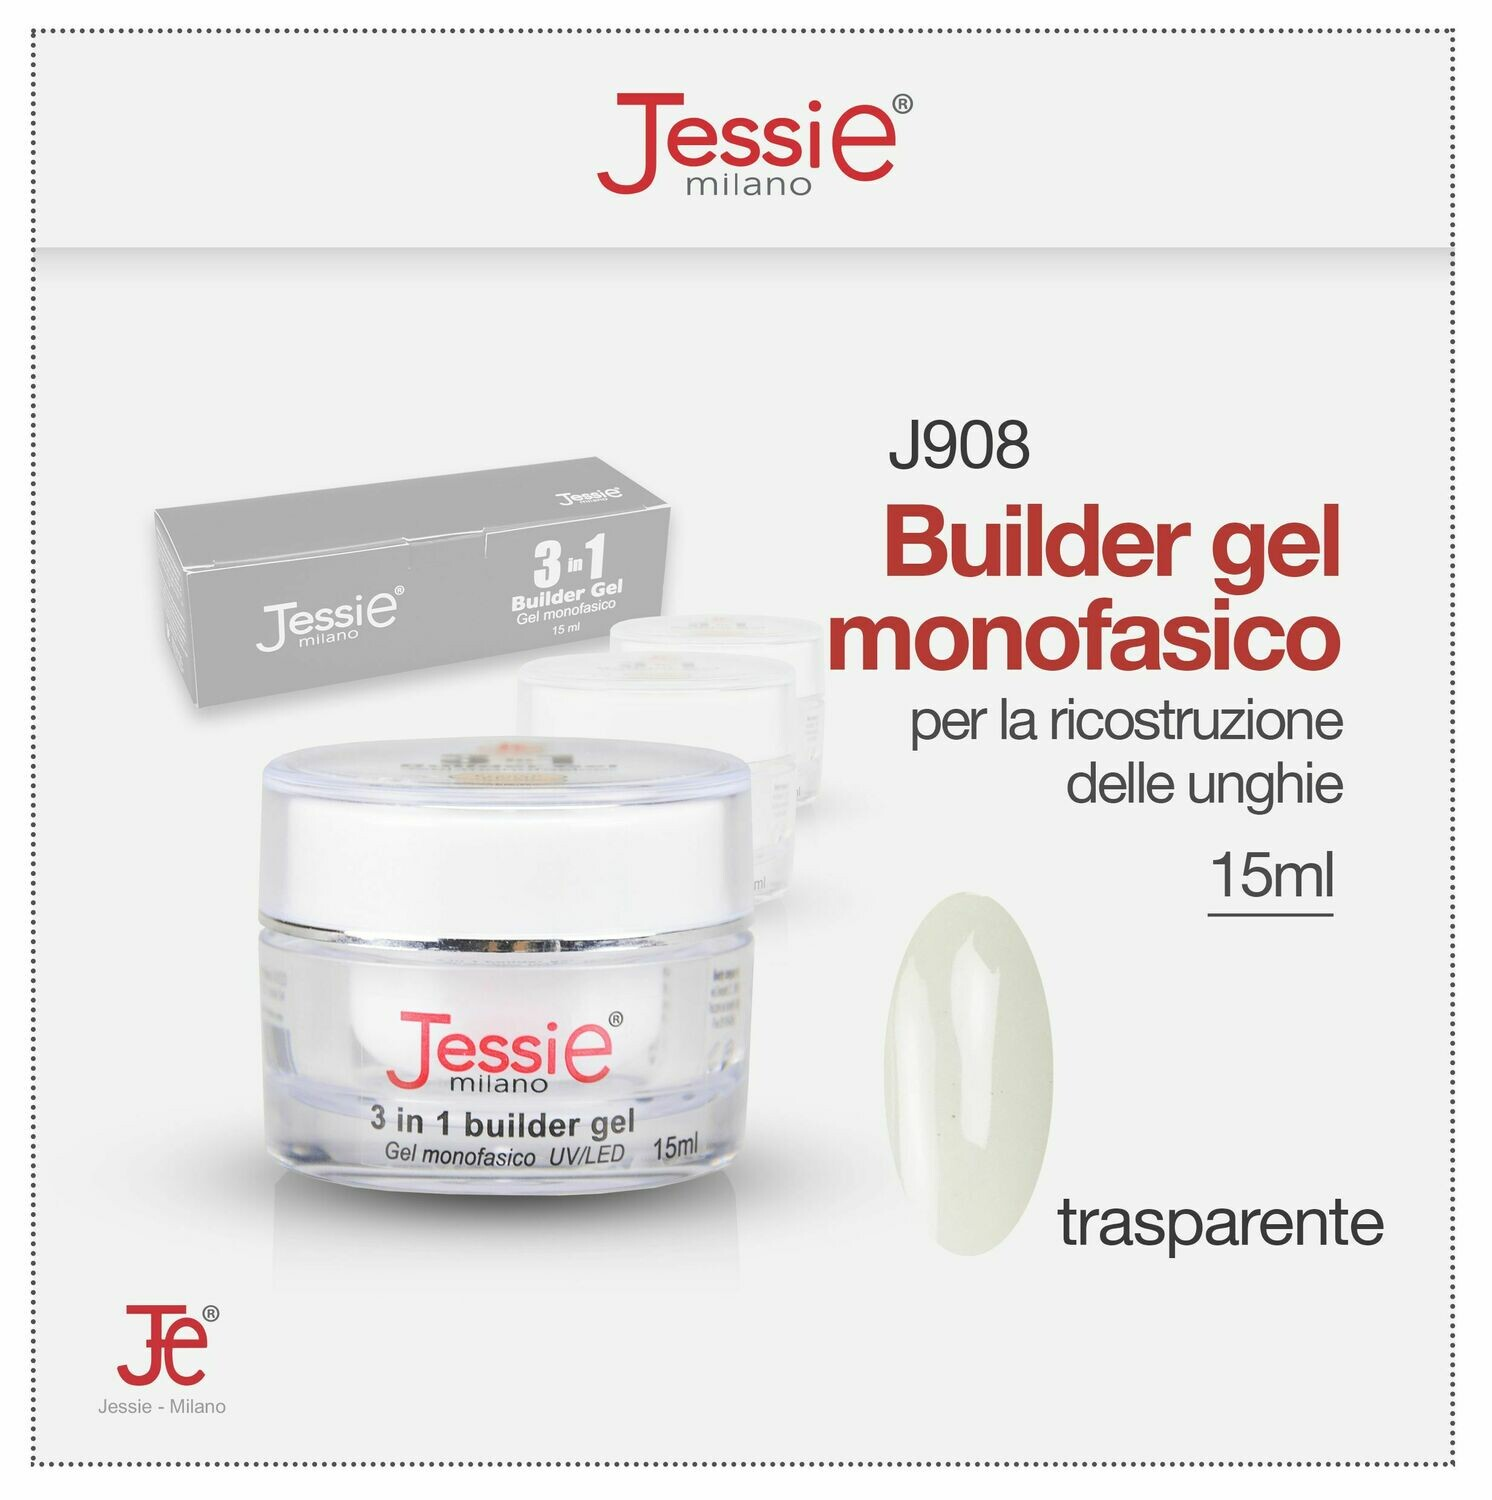 3 IN 1 BUILDER GEL MONOFASICO UV LED 15ML  TRASPARENTE